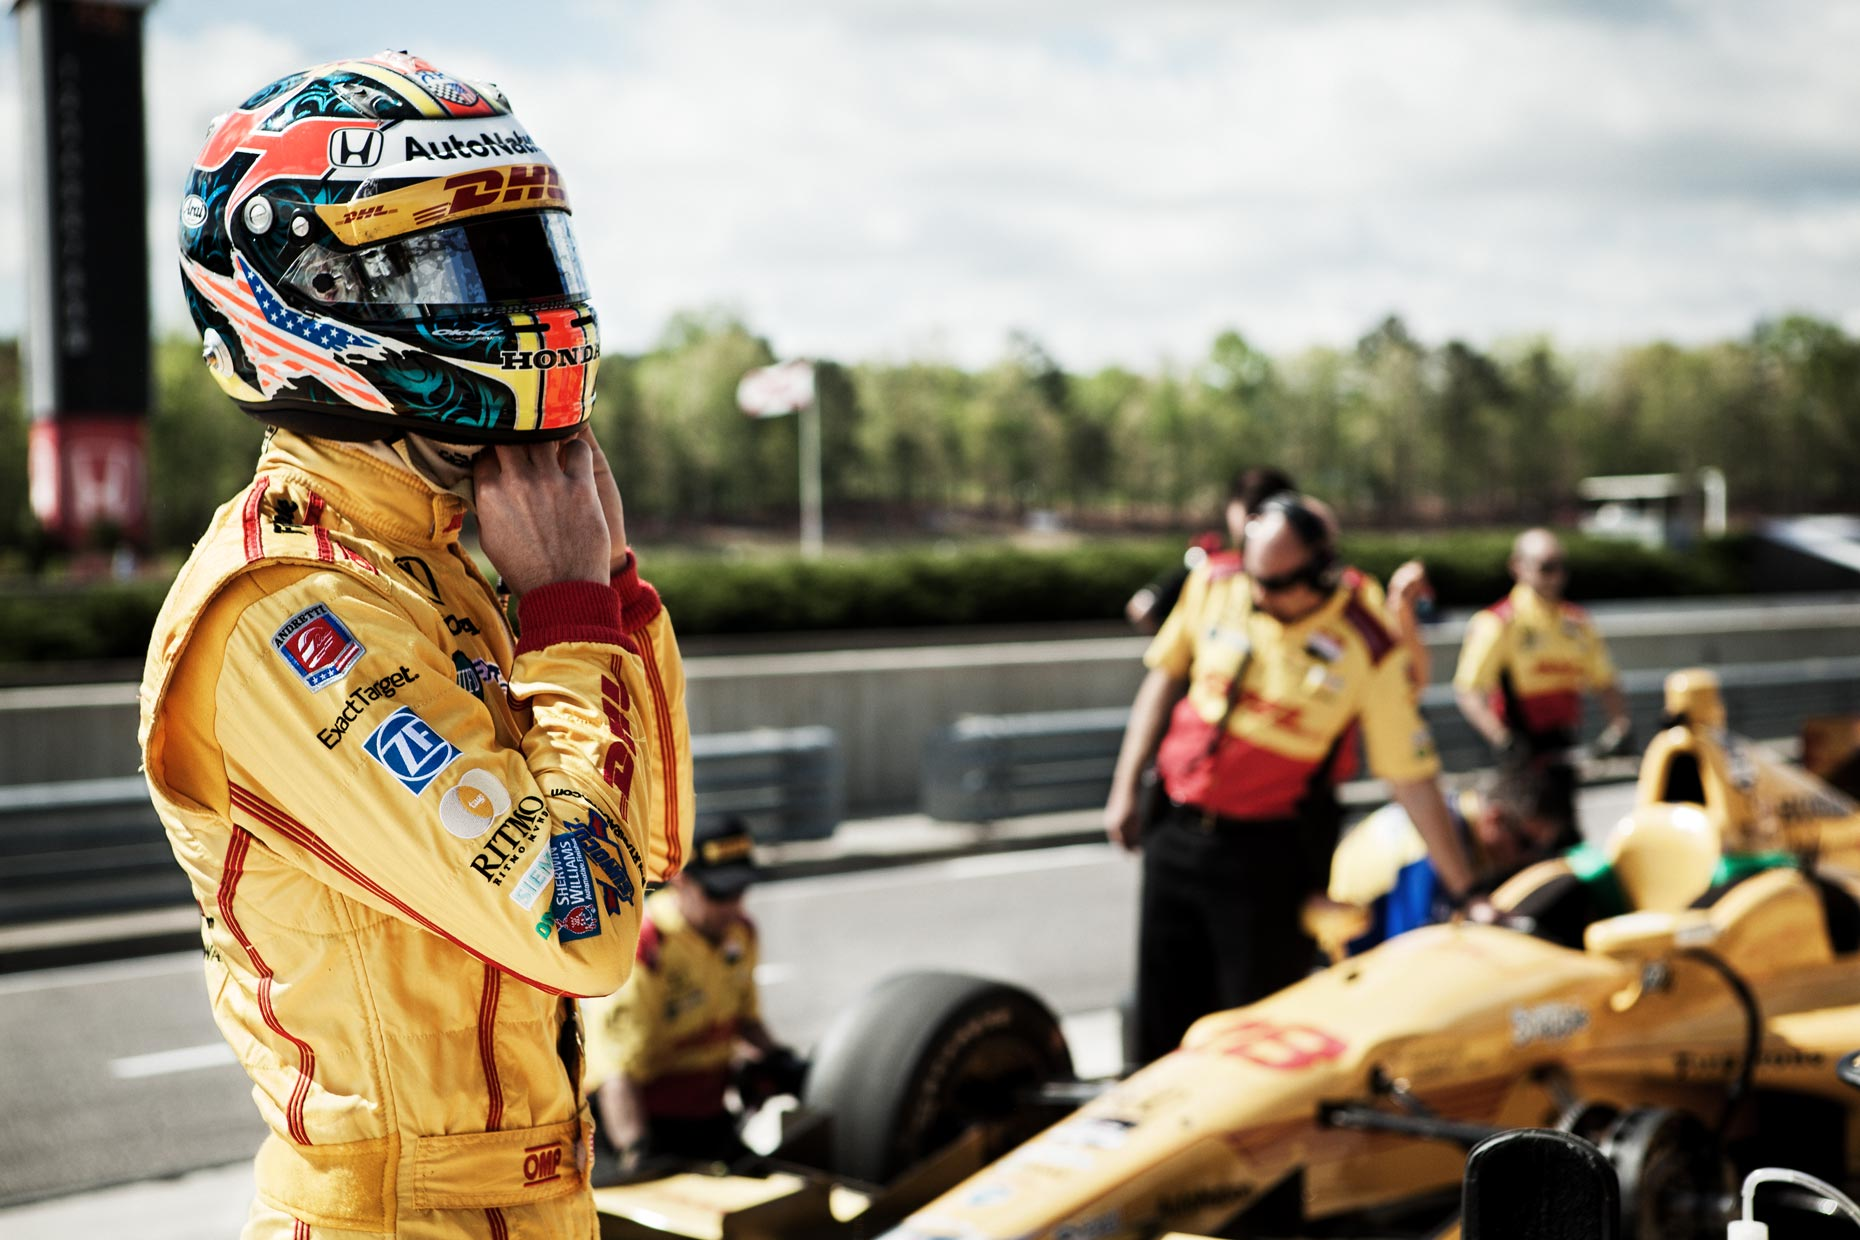 Ryan Hunter-Reay gearing up